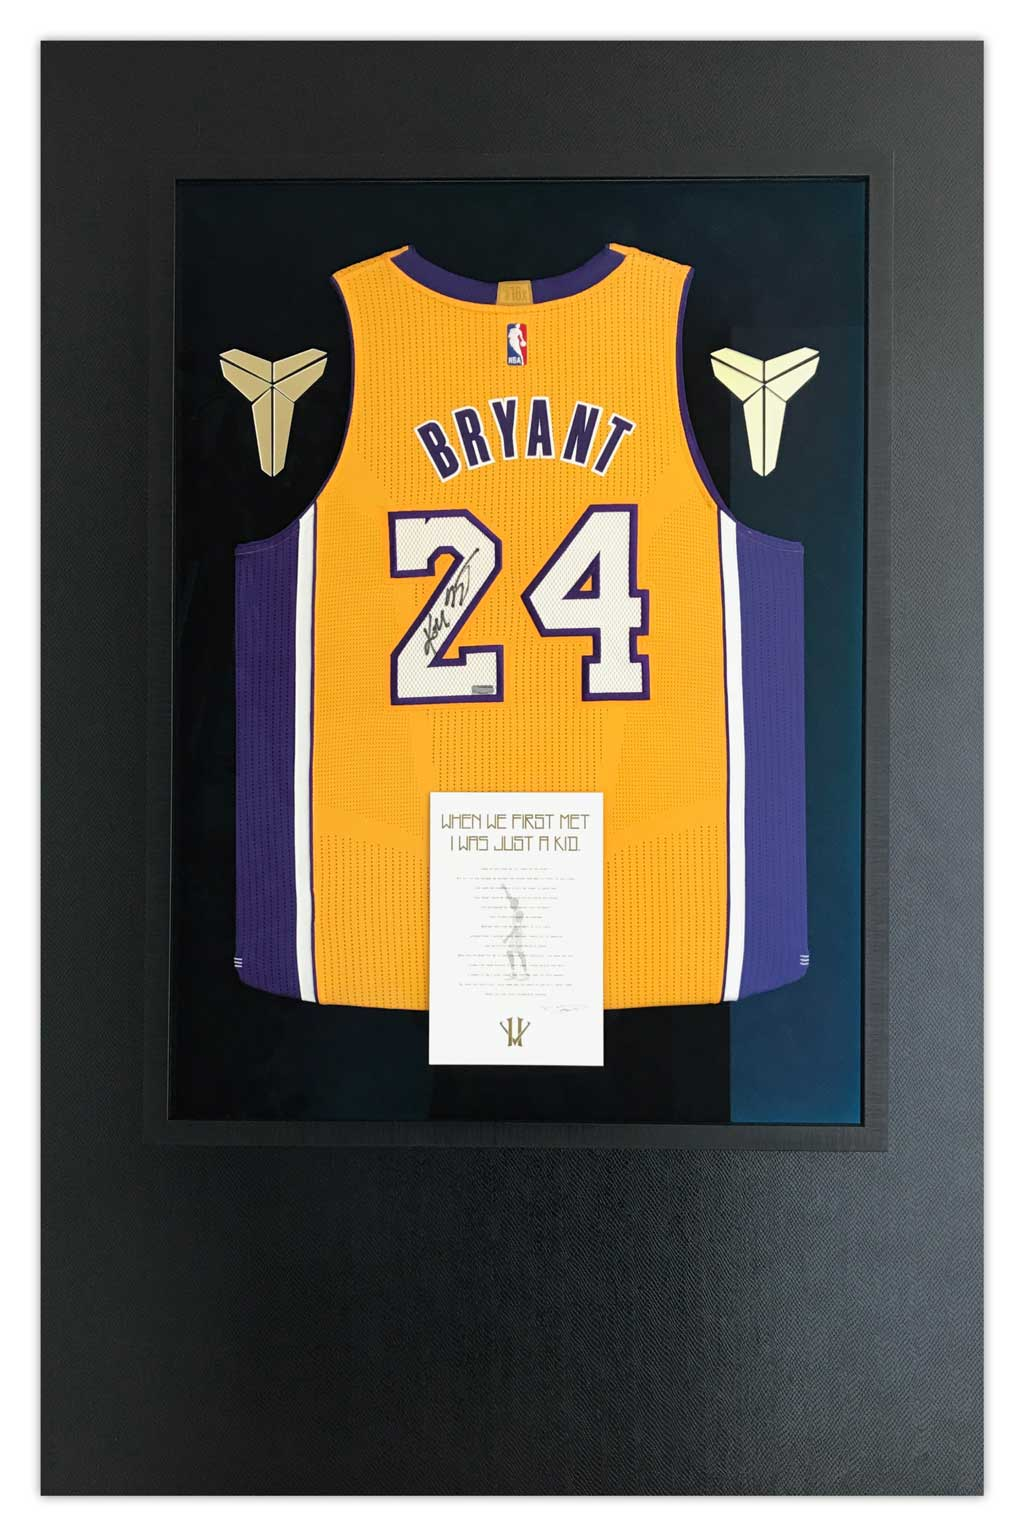 519ff86fe45 Framed Kobe Bryant Jersey up on the wall with snakeskin vinyl